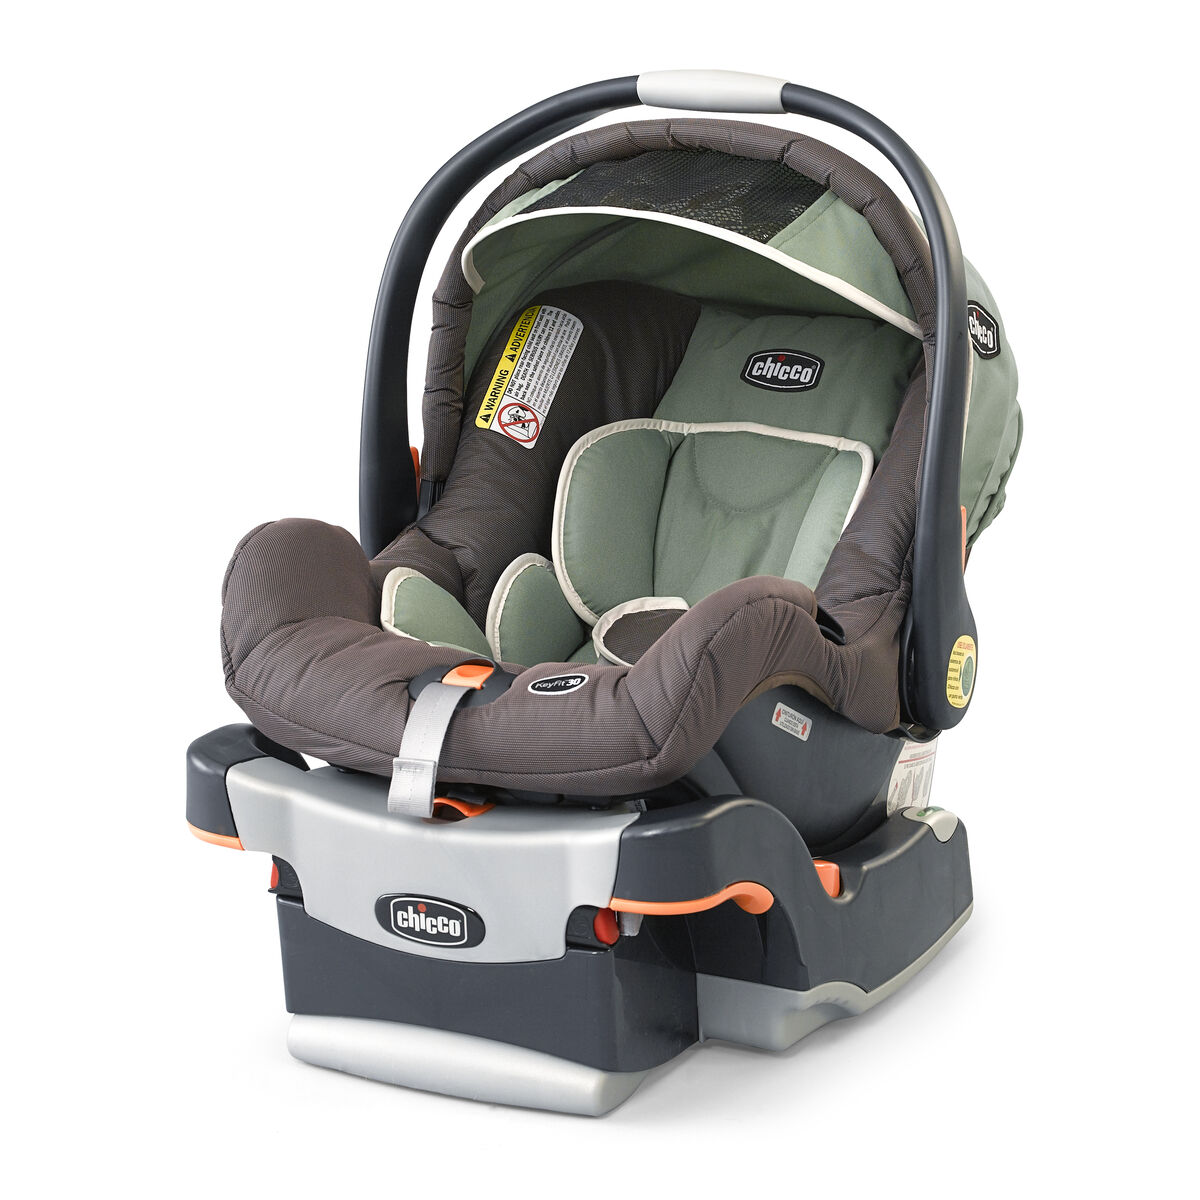 Keyfit 30 infant car seat and base adventurechicco keyfit 30 infant car seat adventure